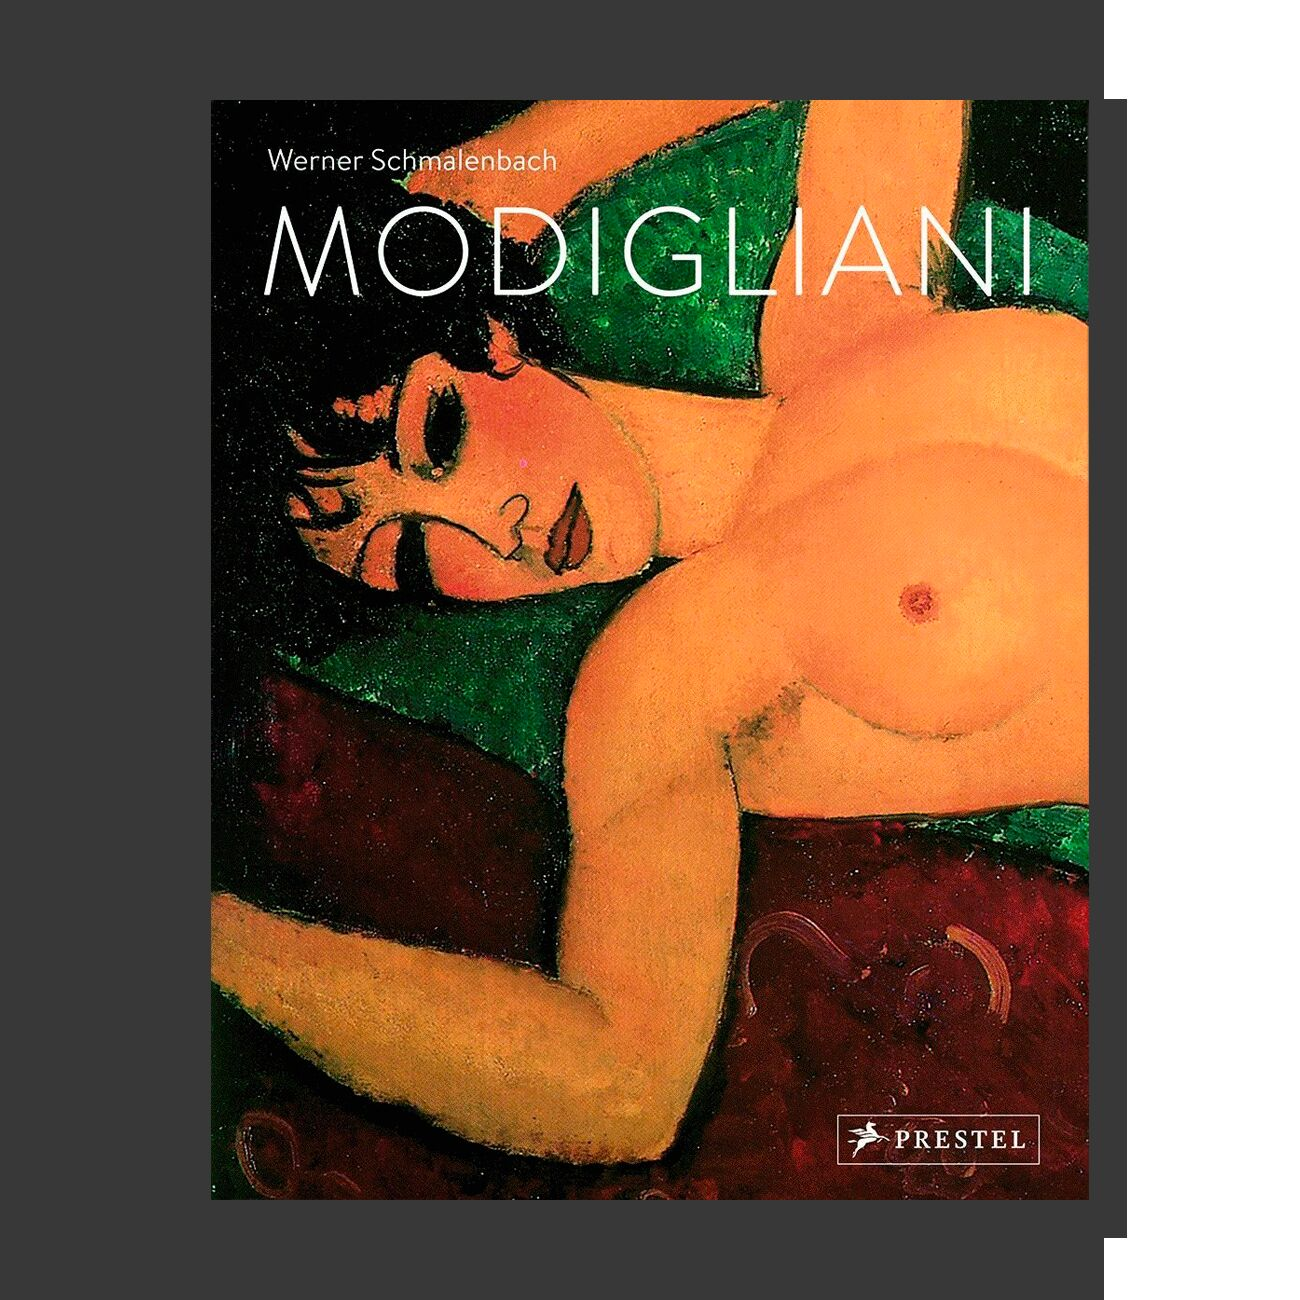 Amedeo Modigliani: Paintings, Sculptures, Drawings